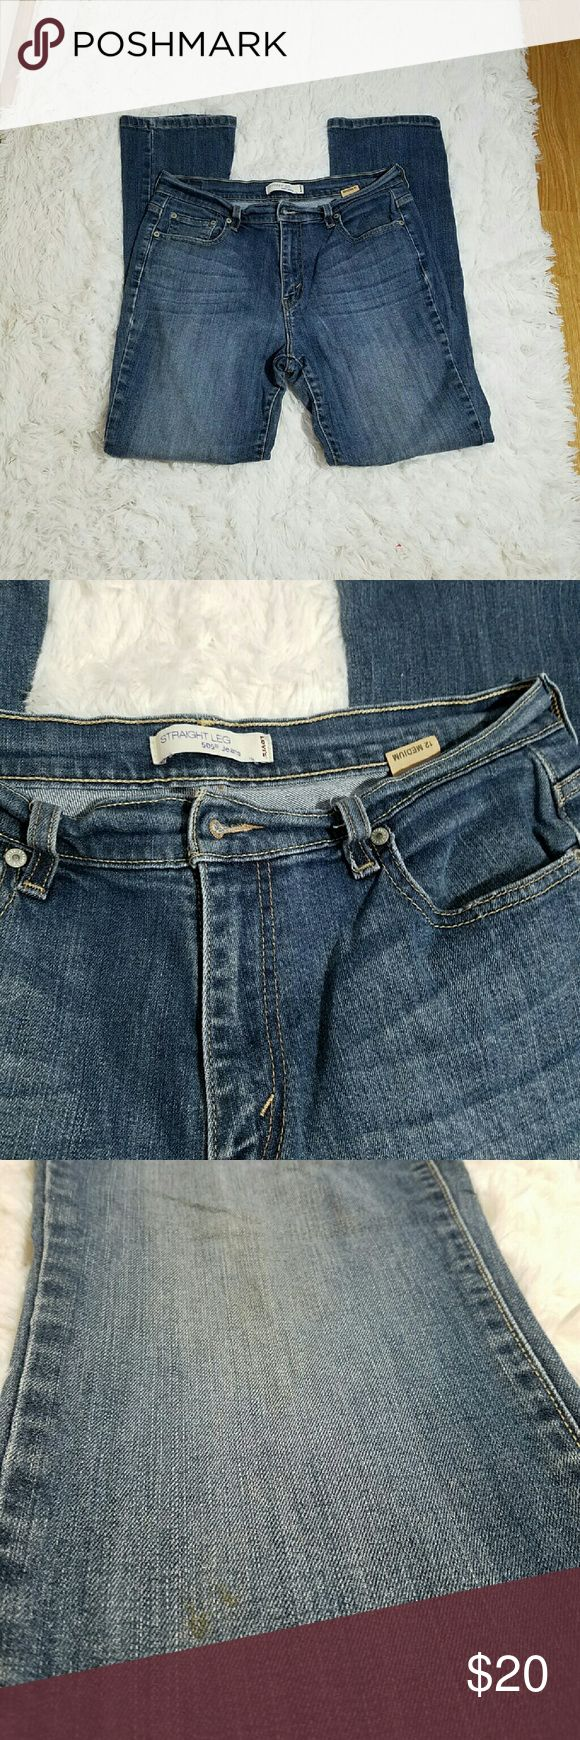 """HIGH WAISTED LEVIS JEANS Levis 505 jeans with light sand blasting in front and back. Size 12 straight leg. Has some dirt stains, see 3rd photo.  Measurements: 16"""", rise 10"""", and inseam 30"""" Levi's Jeans Straight Leg"""